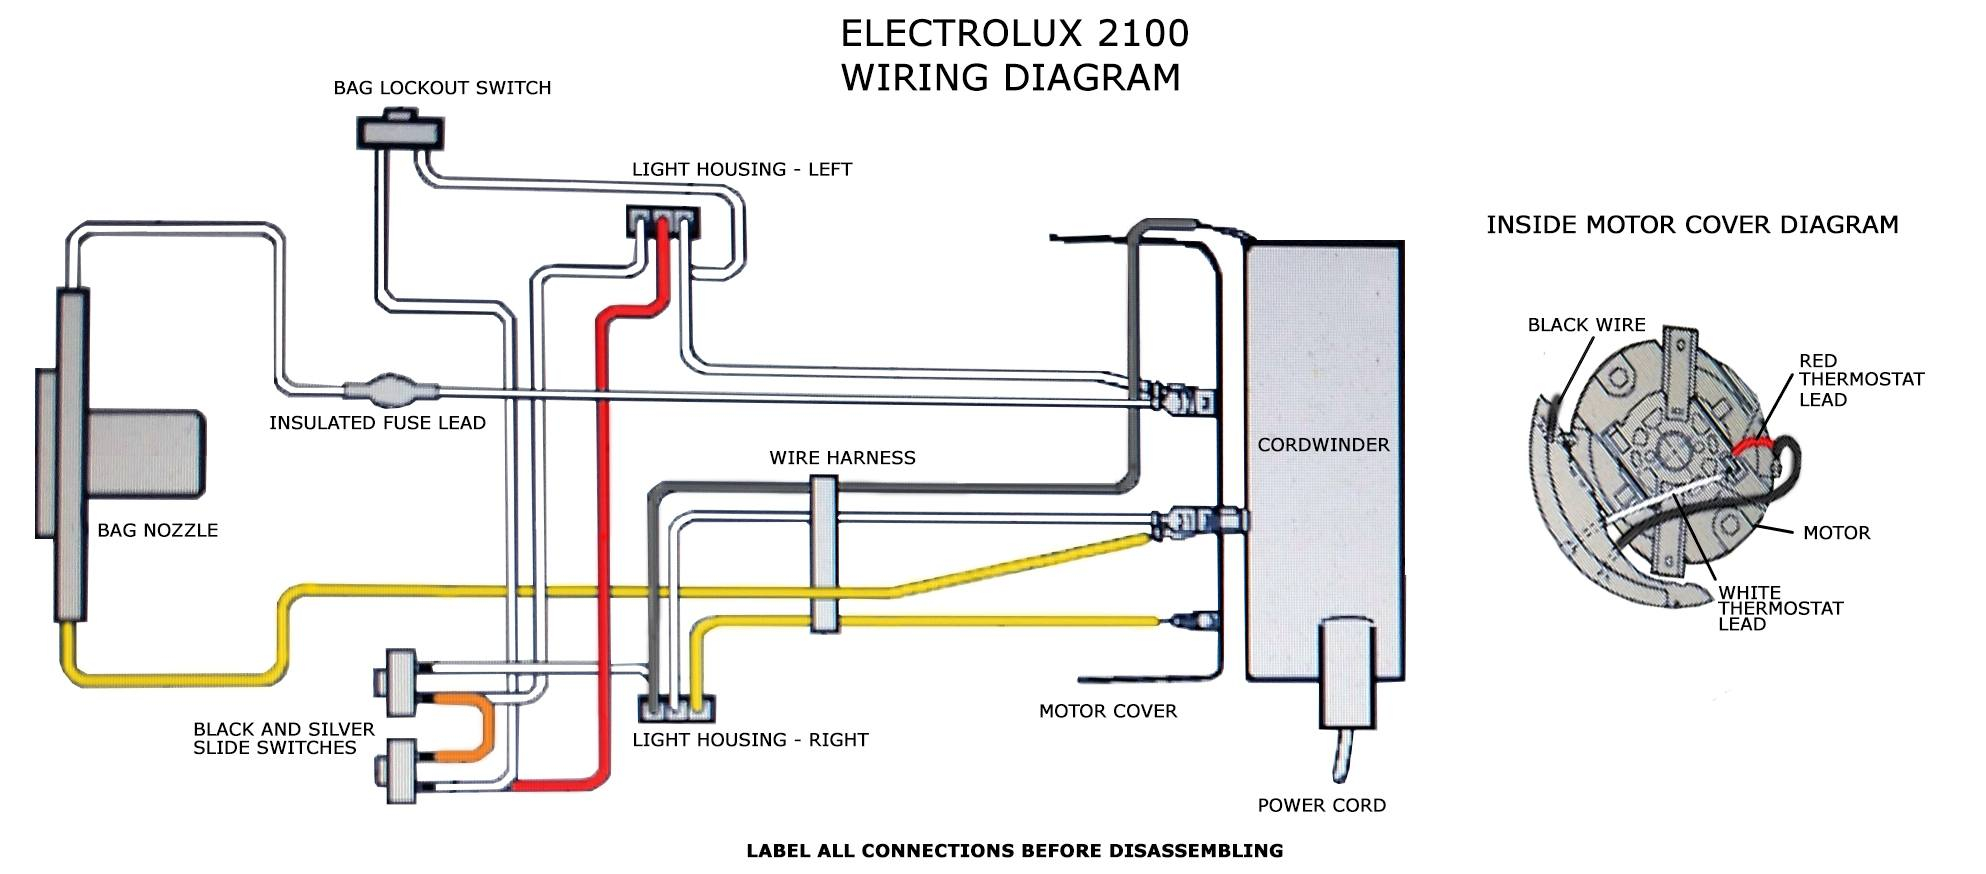 Jacuzzi Pool Cleaner Troubleshooting Electrolux Vacuum Wiring Diagram Download Wiring Diagram